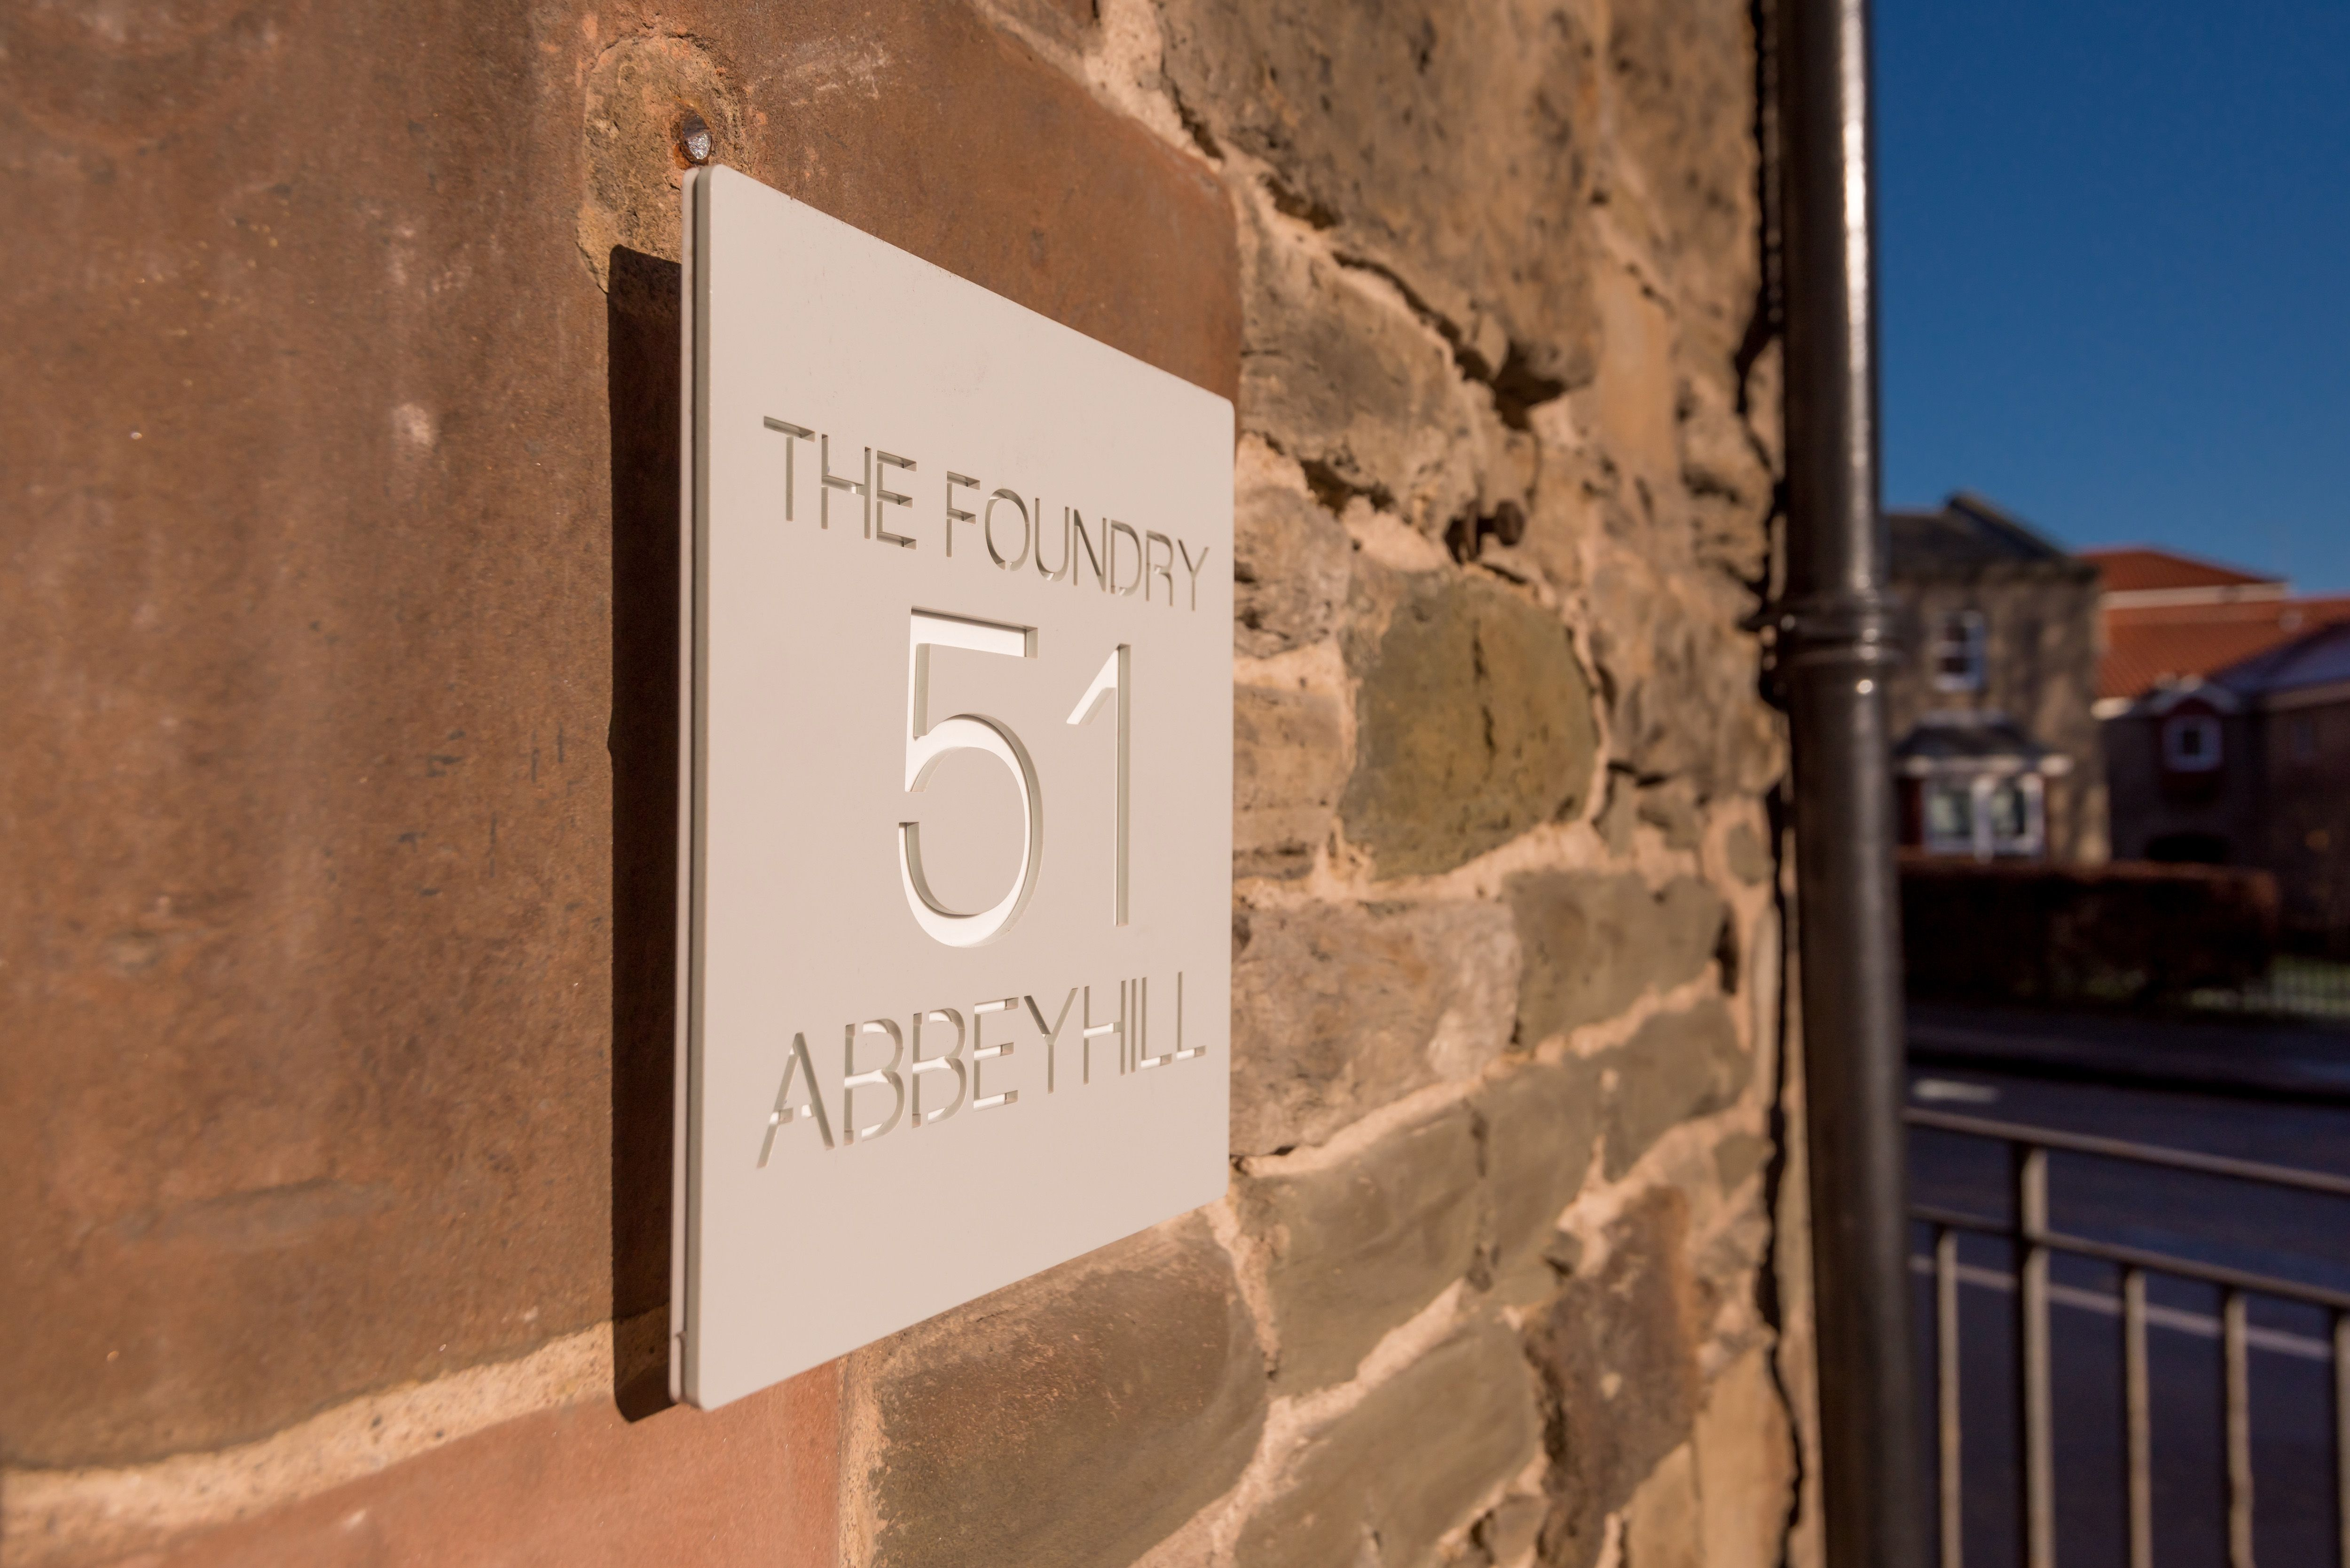 The Foundry, 51 Abbeyhill, Holyrood - Photo 16